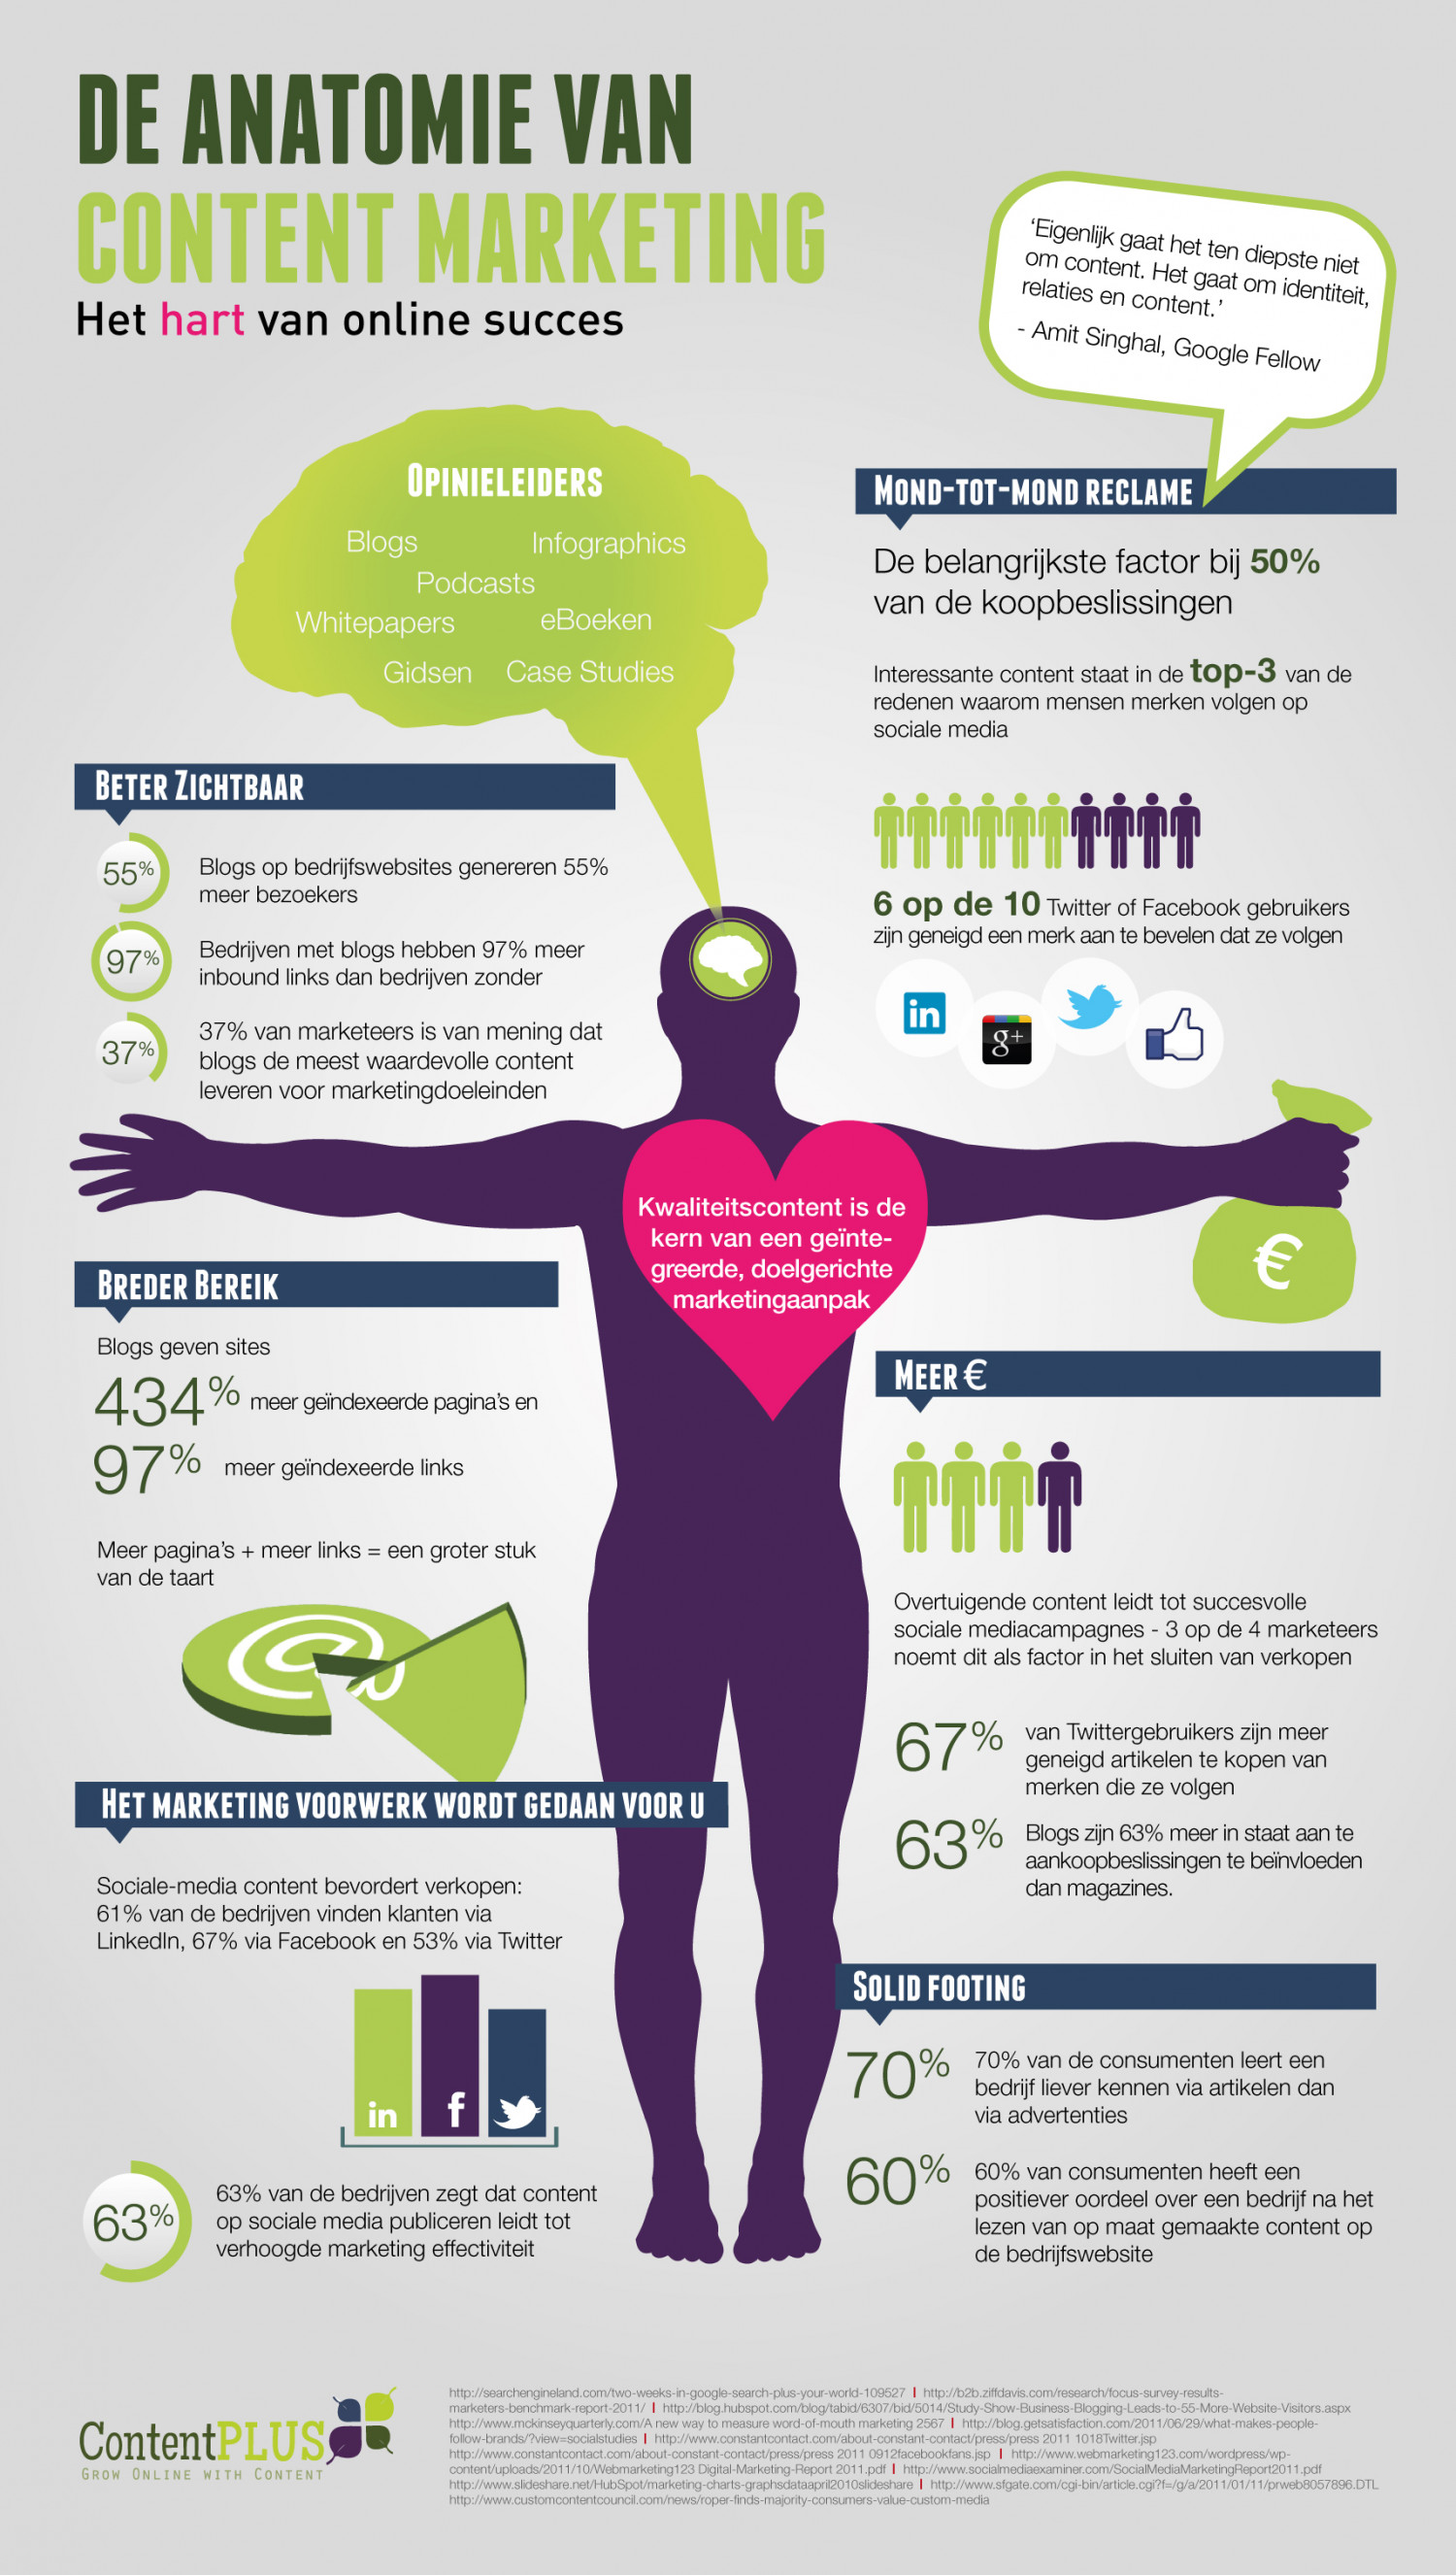 De Anatomie van Content Marketing Infographic